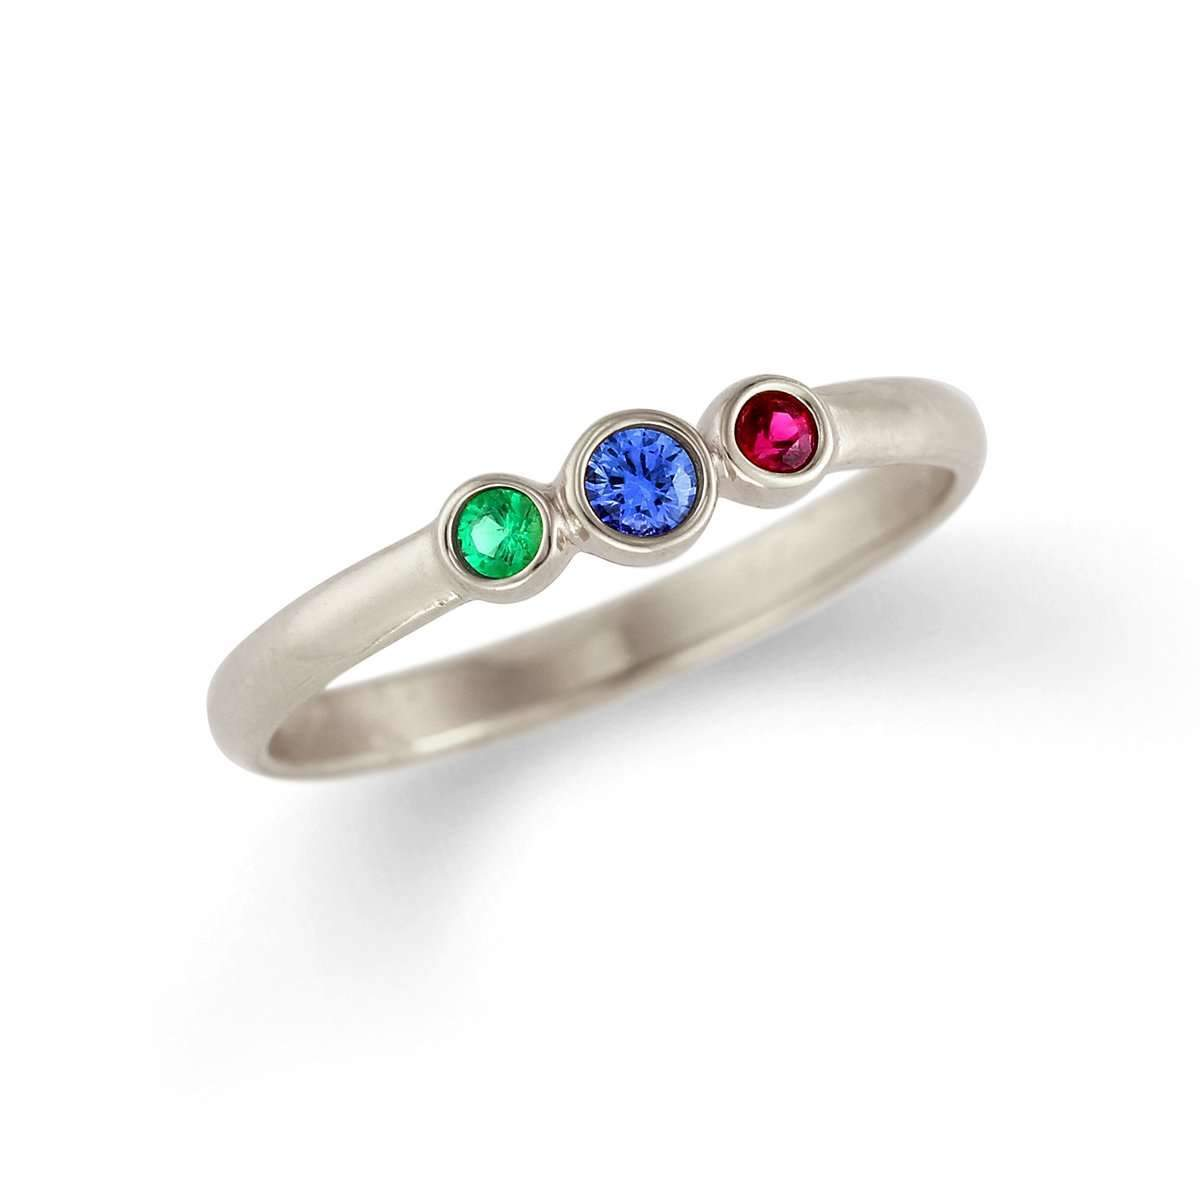 Traditonal Three Stone Mother's Ring with Natural Birthstones-Alysha Whitfield